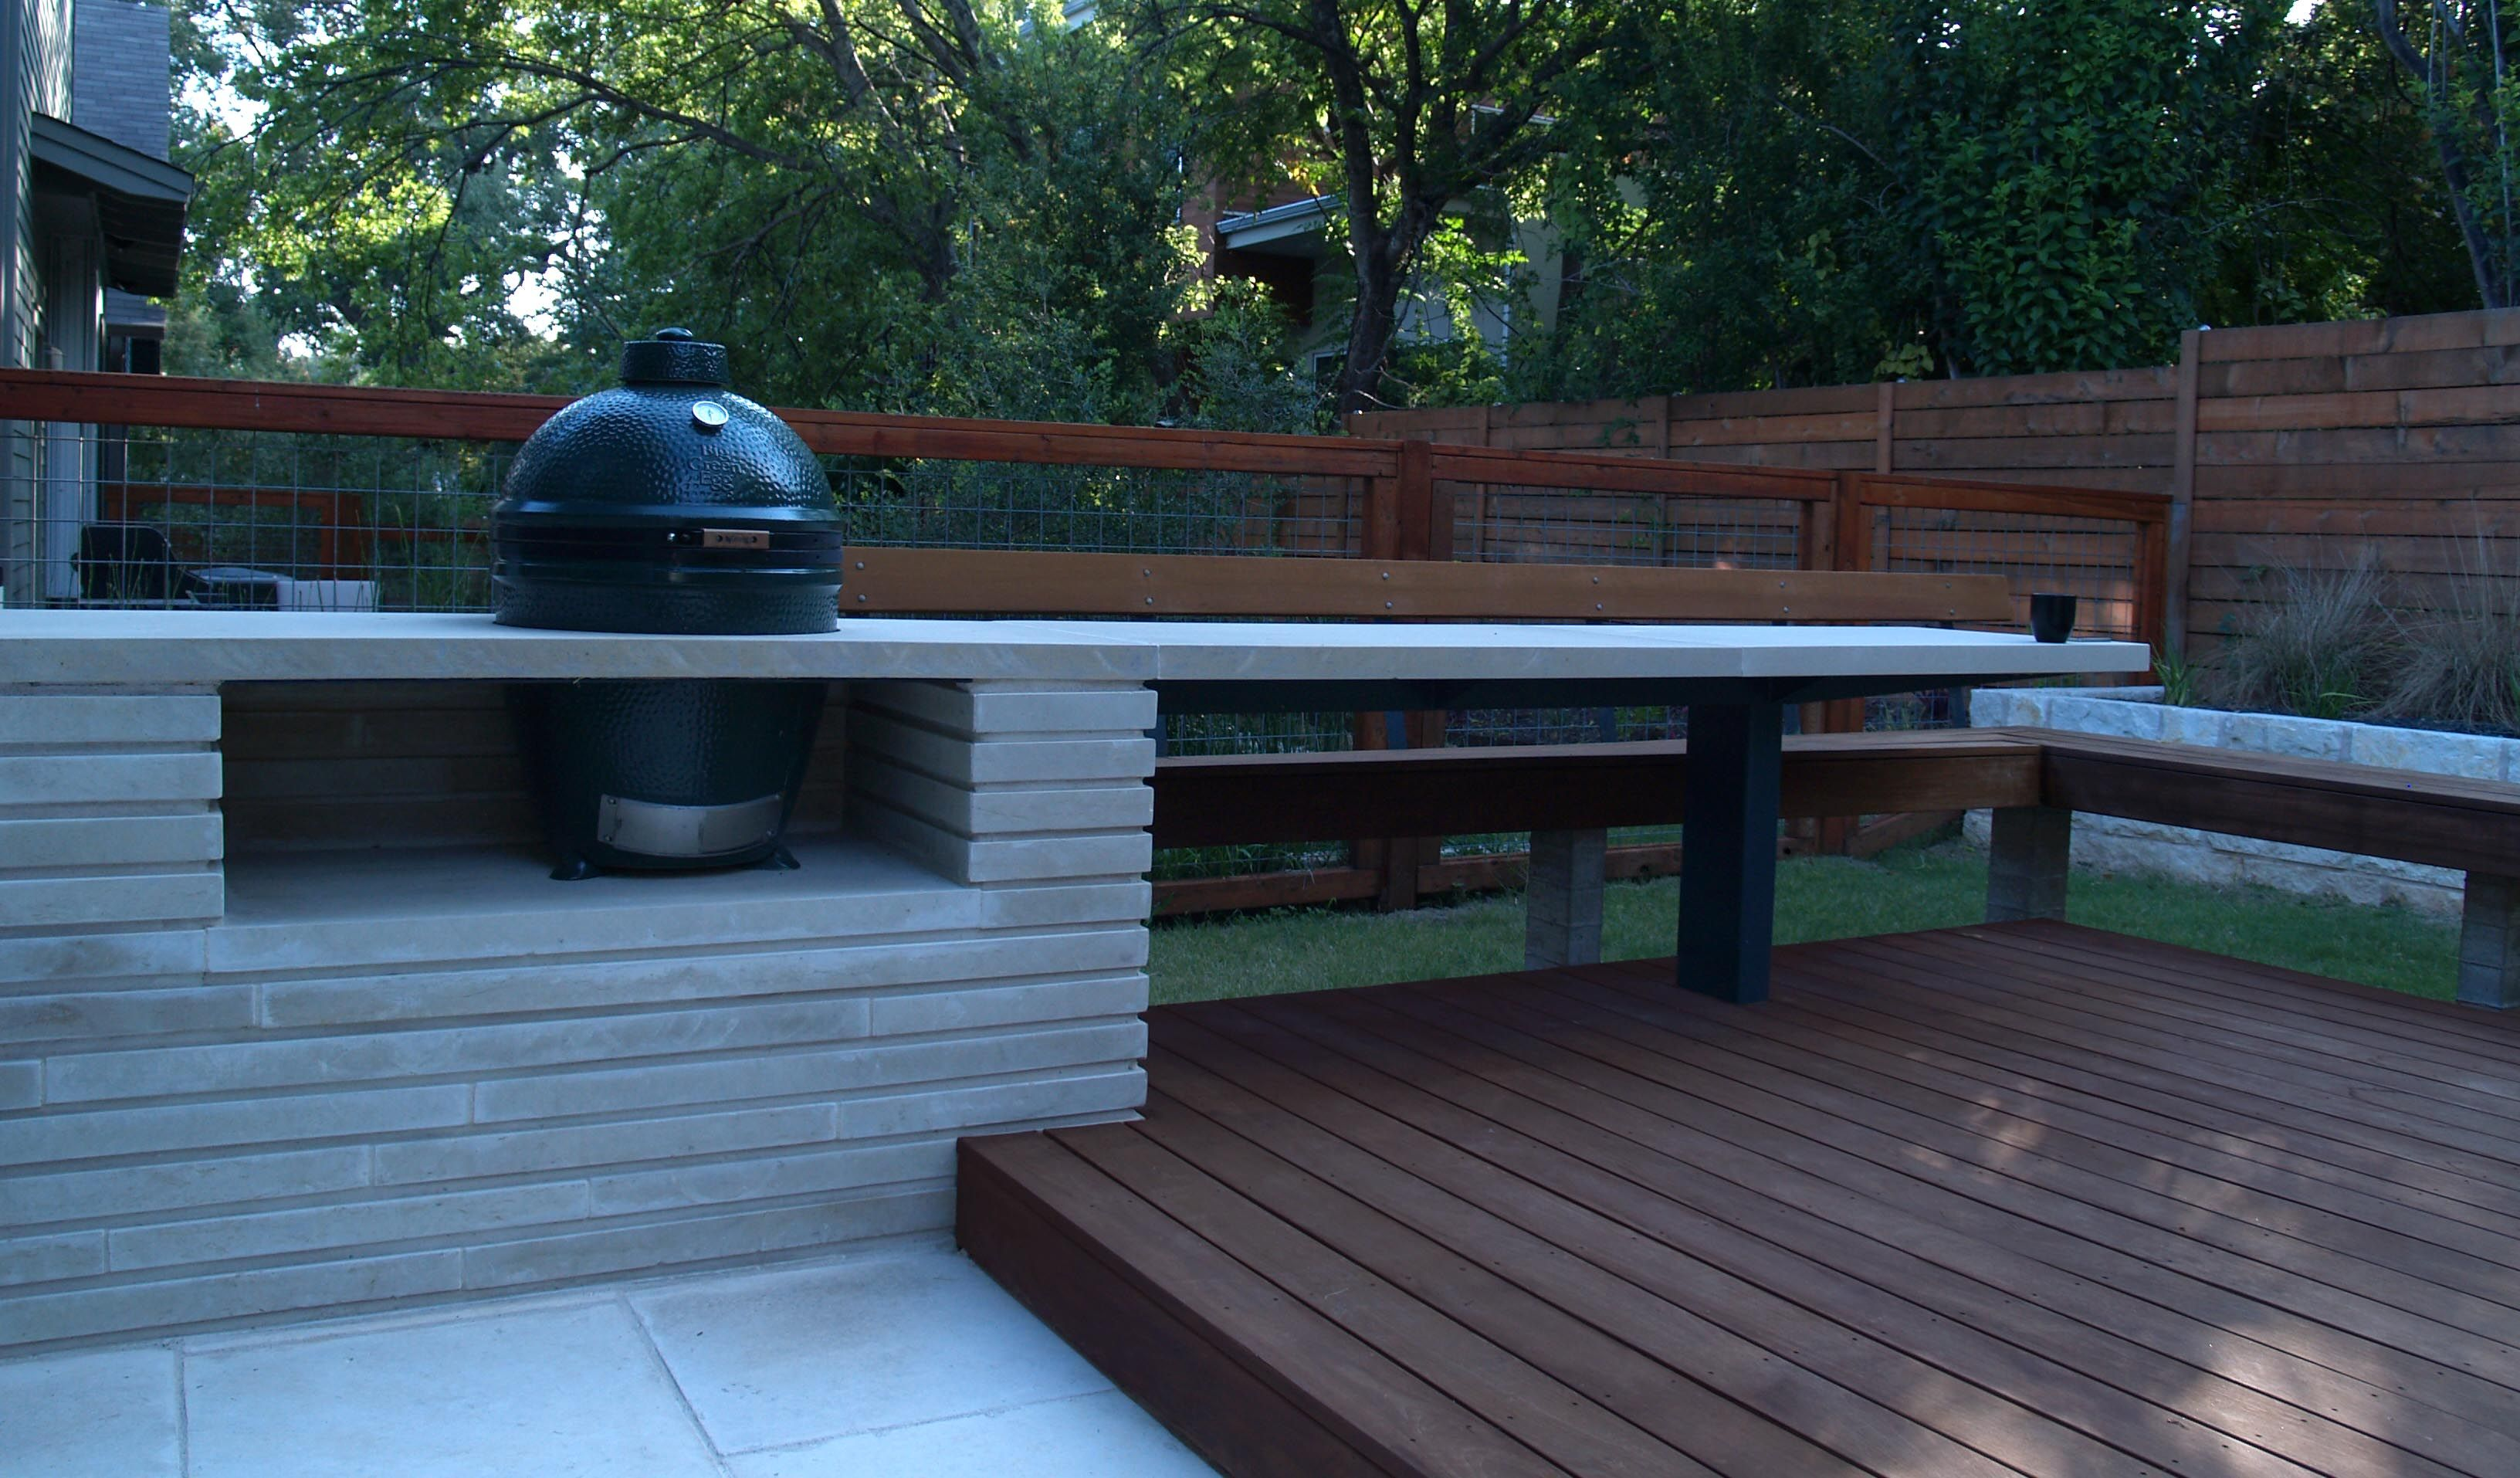 Austin Outdoor Kitchens Big Green Egg Nestled In A Modern Lueders Limestone Counter